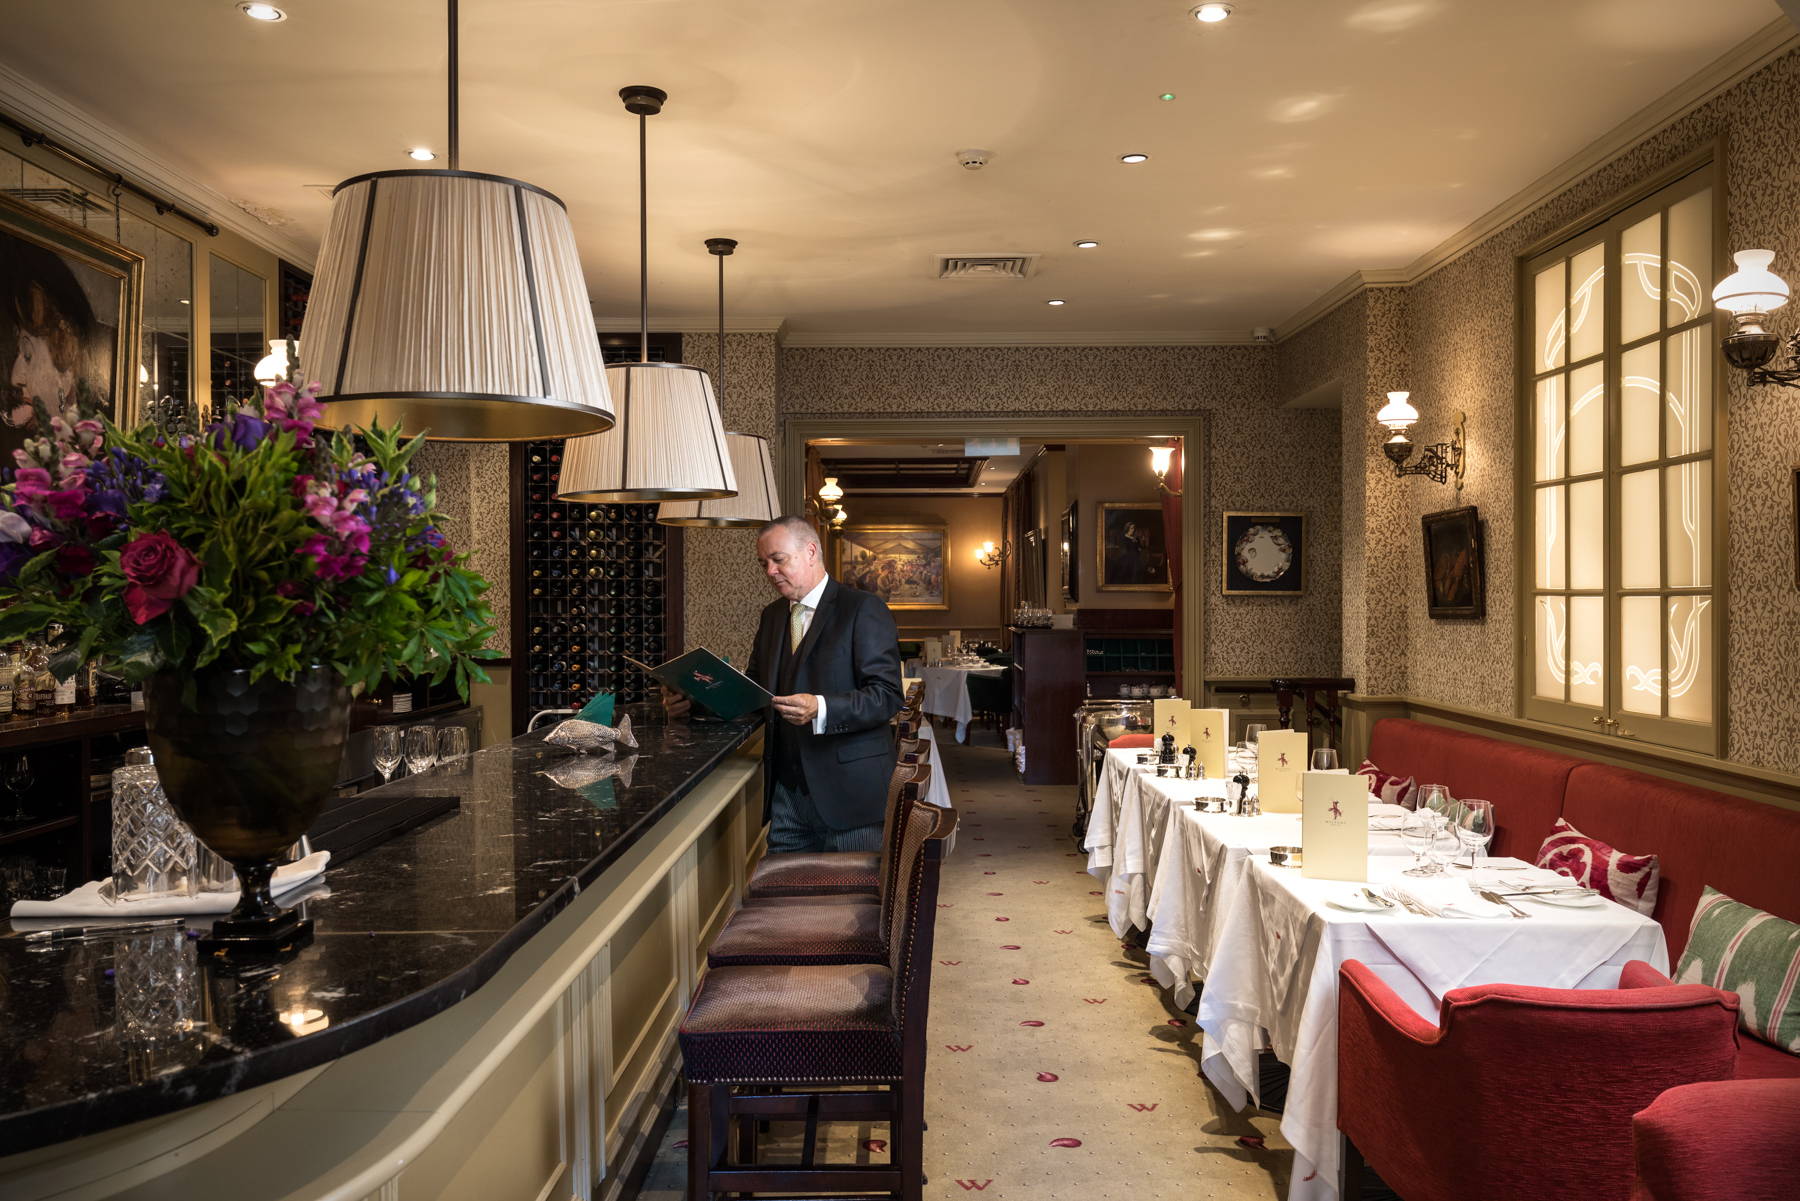 Michael has been at the establishment restaurant, Wiltons, for 21 years.